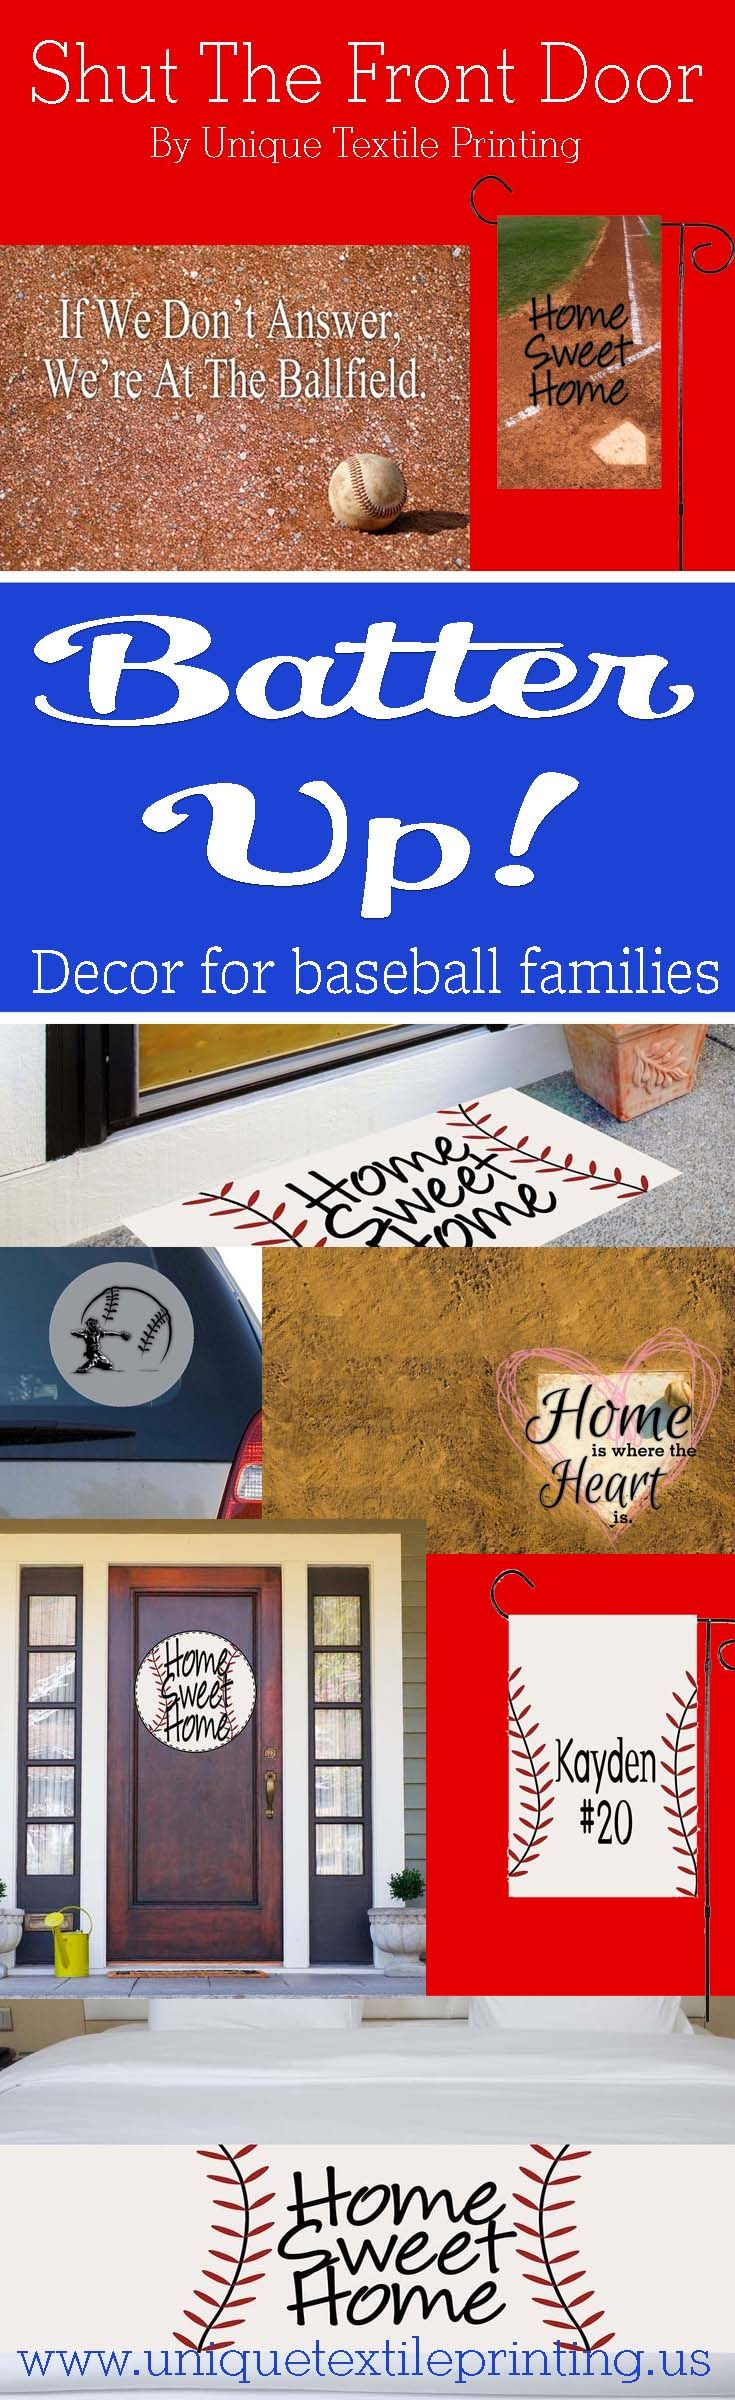 Baseball Decor to get you pumped up for the season.   Outdoor and indoor decor that can be customized for your ball player.  Do you travel for tournaments?  We have stickers for the entire team to travel in style. Show off your baseball spirit with these products! Batter Up